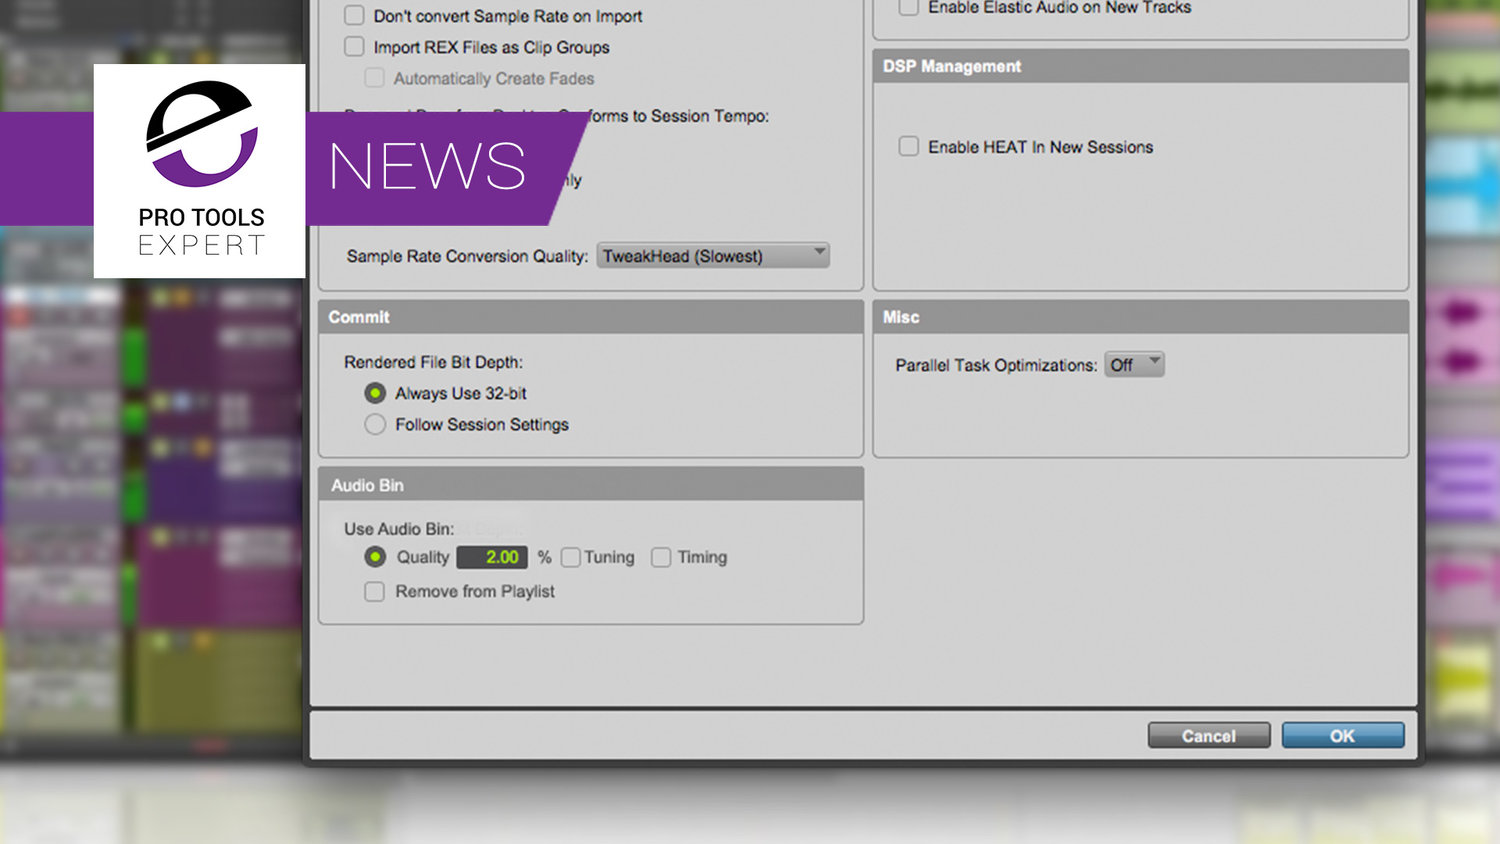 Rumour - New Feature In Pro Tools 2018 4 1 - Audio Bin | Pro